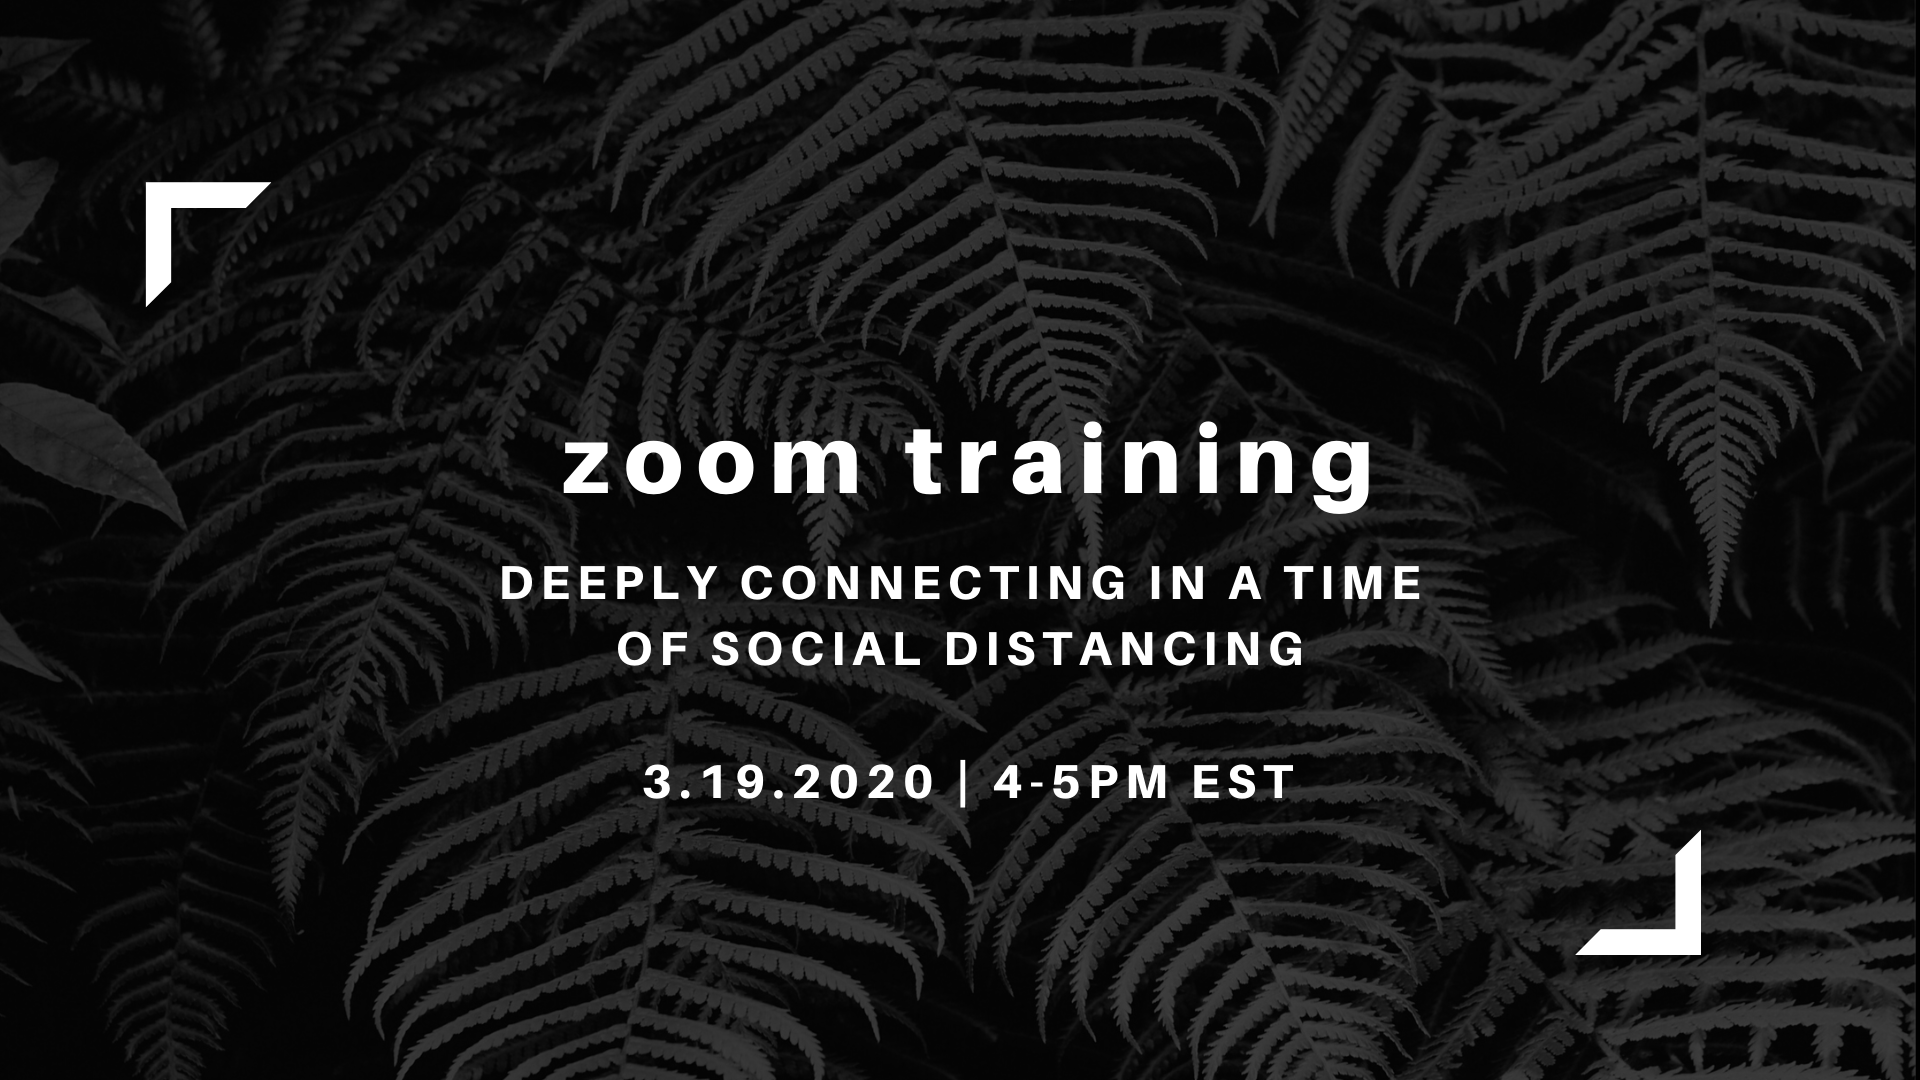 Zoom Training: Deeply connecting in a time of social distancing